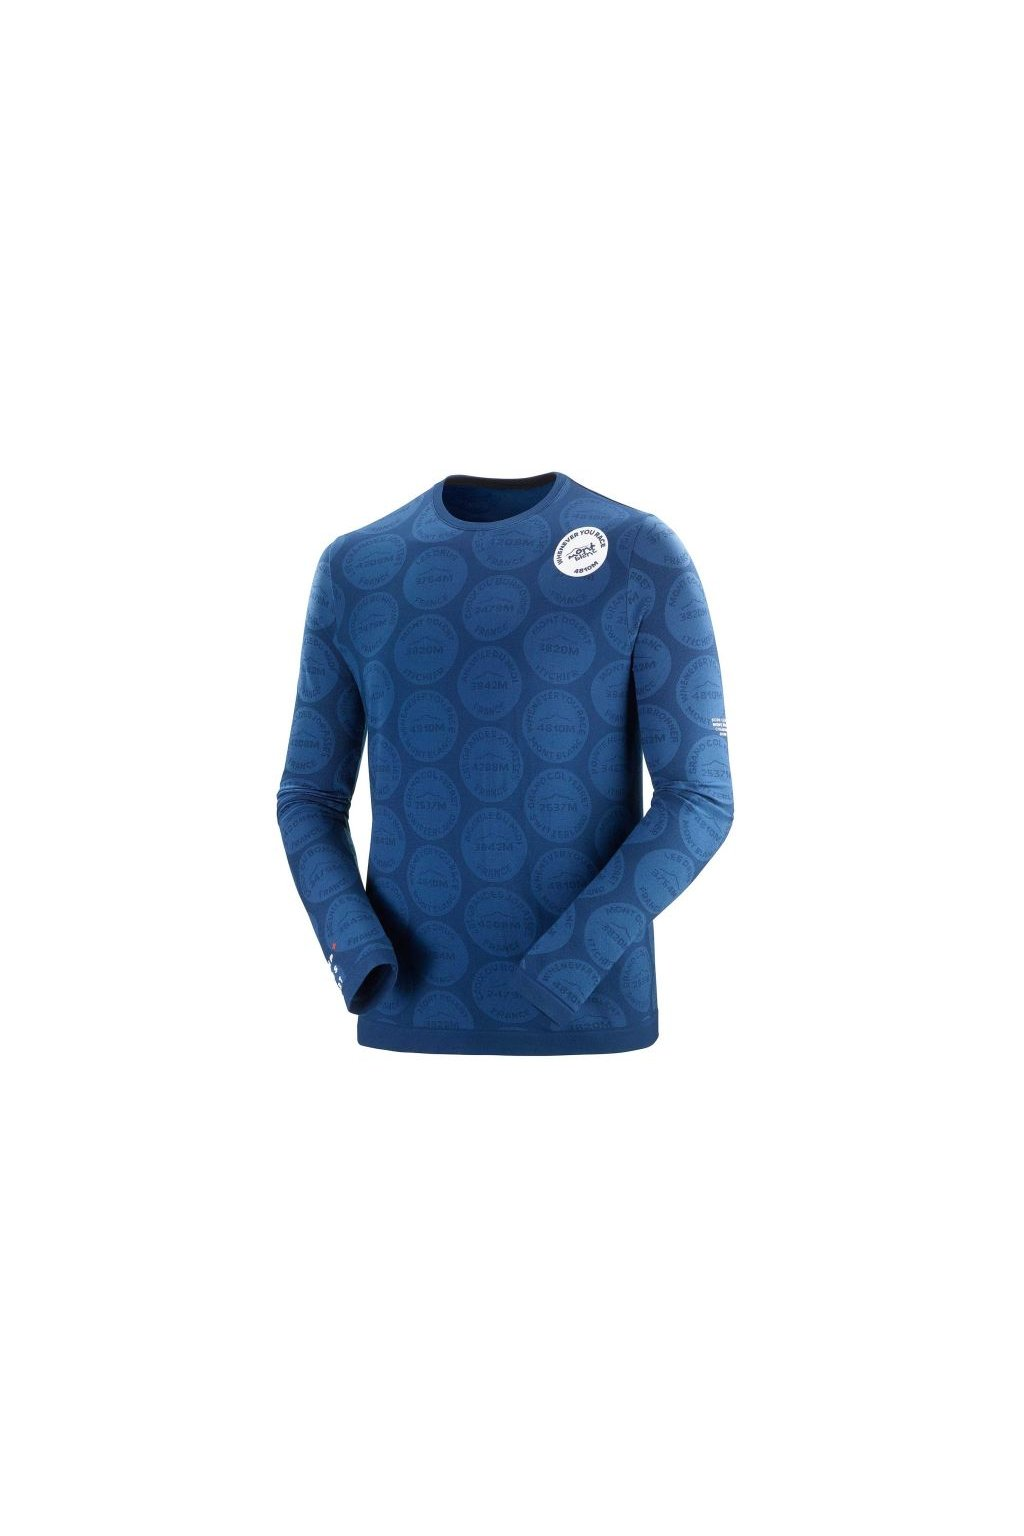 training tshirt ls badges mont blanc 2020 blue l (1)